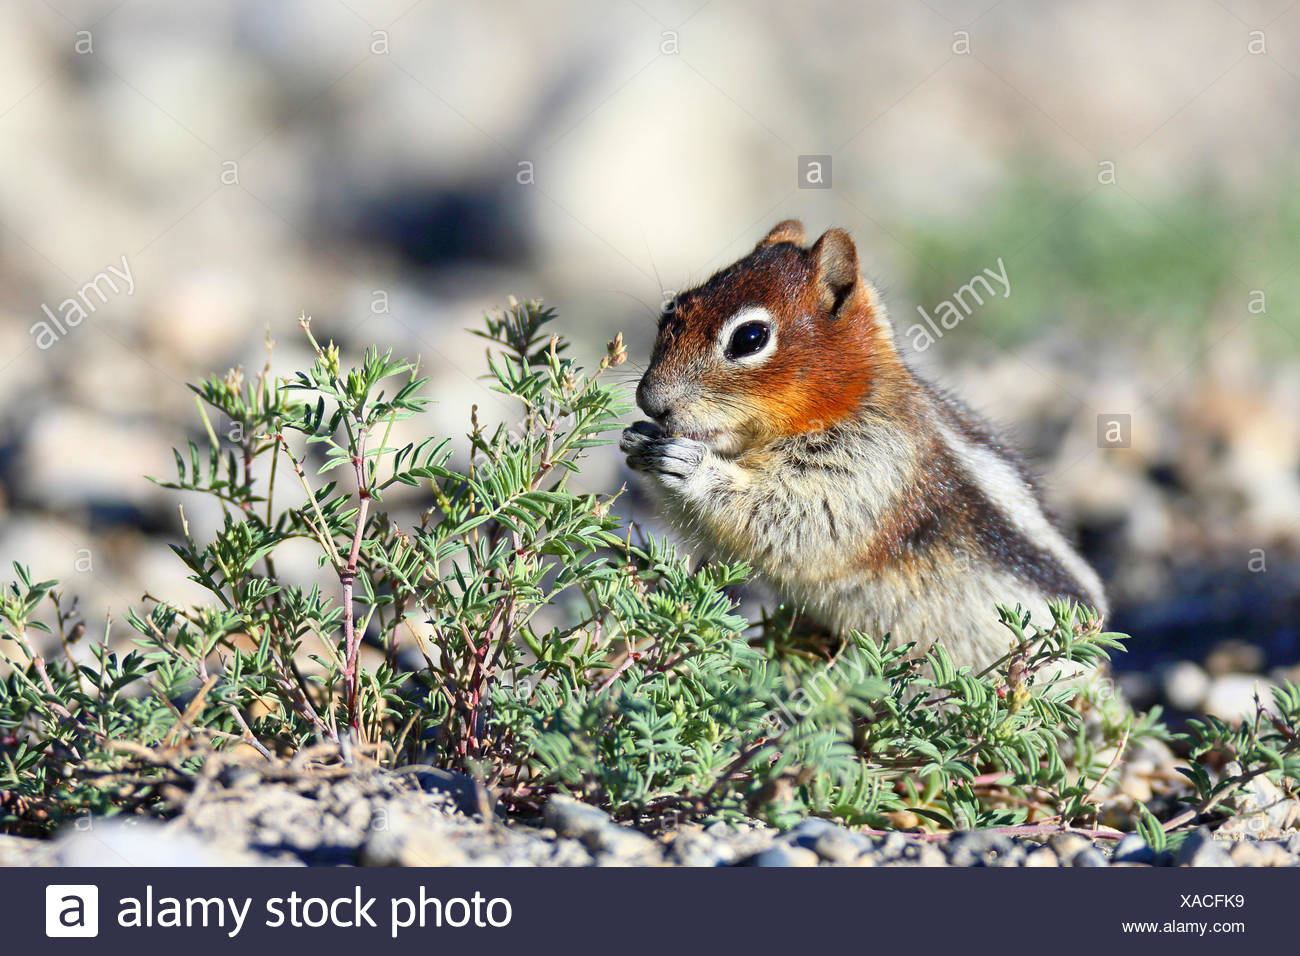 golden-mantled ground squirrel (Spermophilus lateralis, Citellus lateralis, Callospermophilus lateralis), sits on the groung and is eating, Cananda, Banff National Park - Stock Image